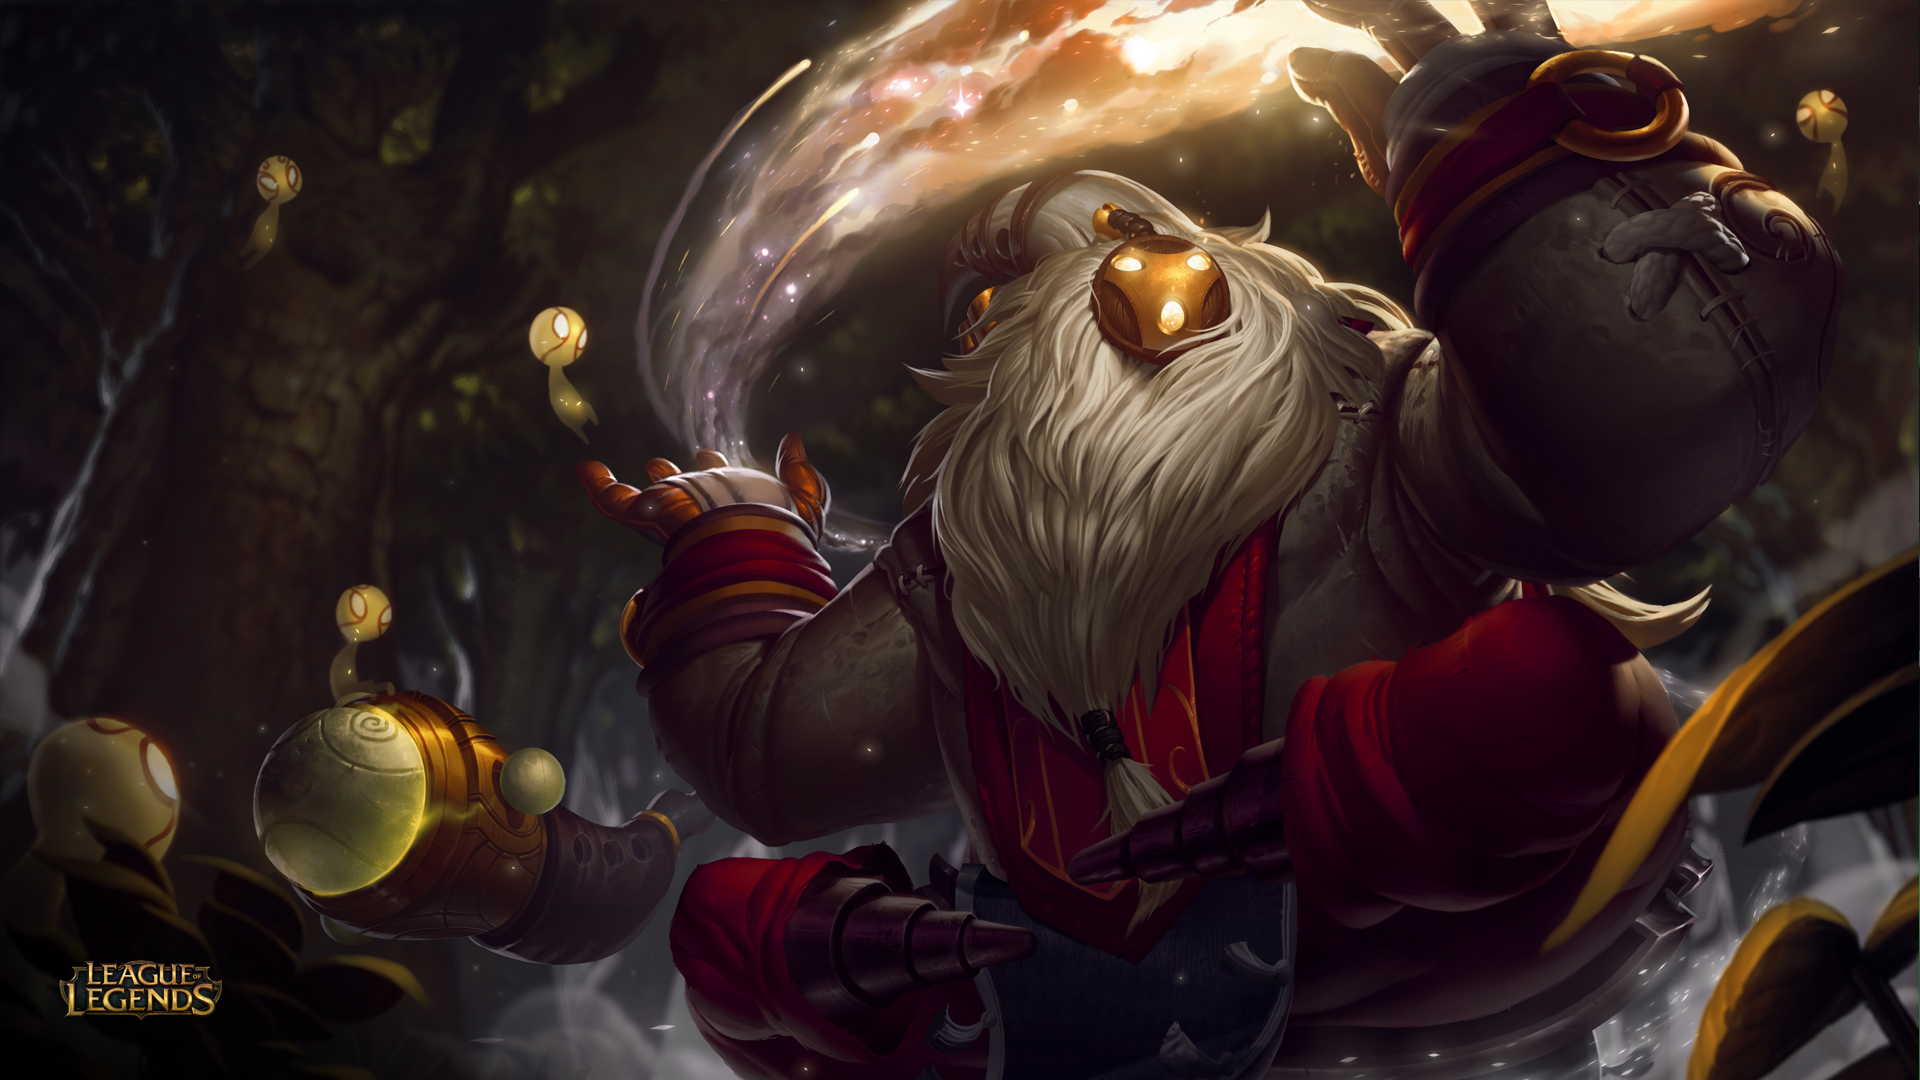 Bard Minimalistic League Of Legends Wallpapers League Of: 9 Bard (League Of Legends) HD Wallpapers